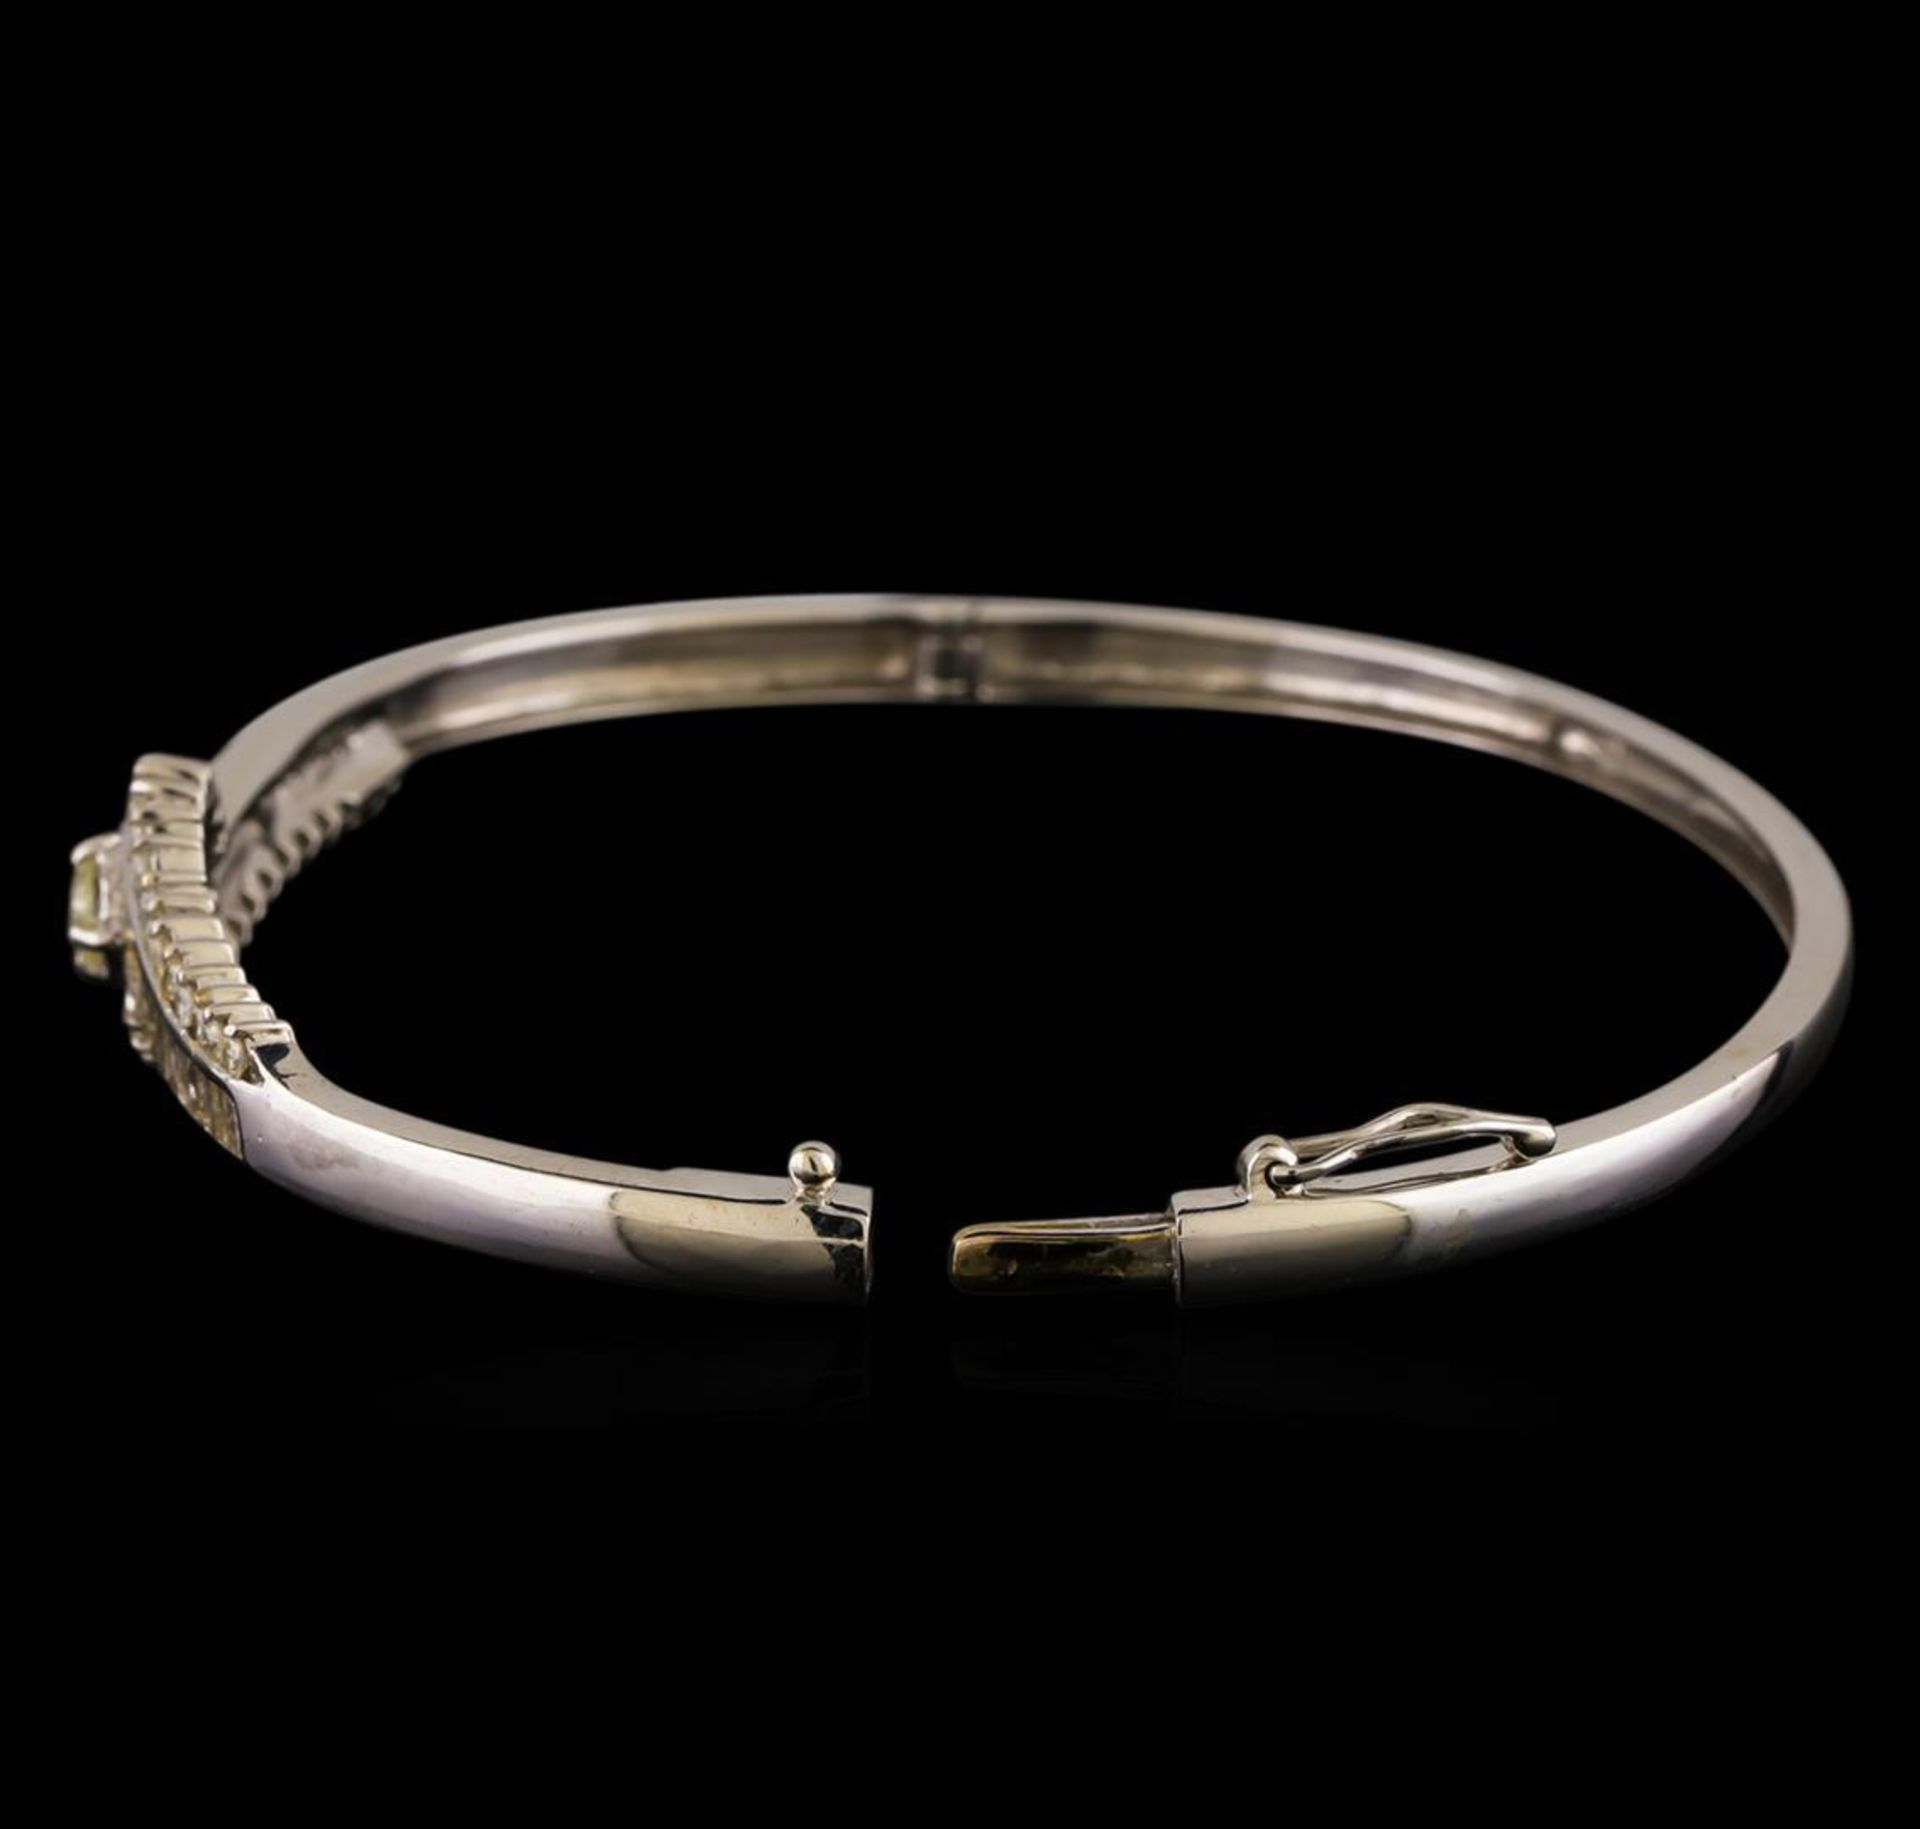 1.17 ctw Diamond Bangle Bracelet - 14KT White Gold - Image 3 of 4